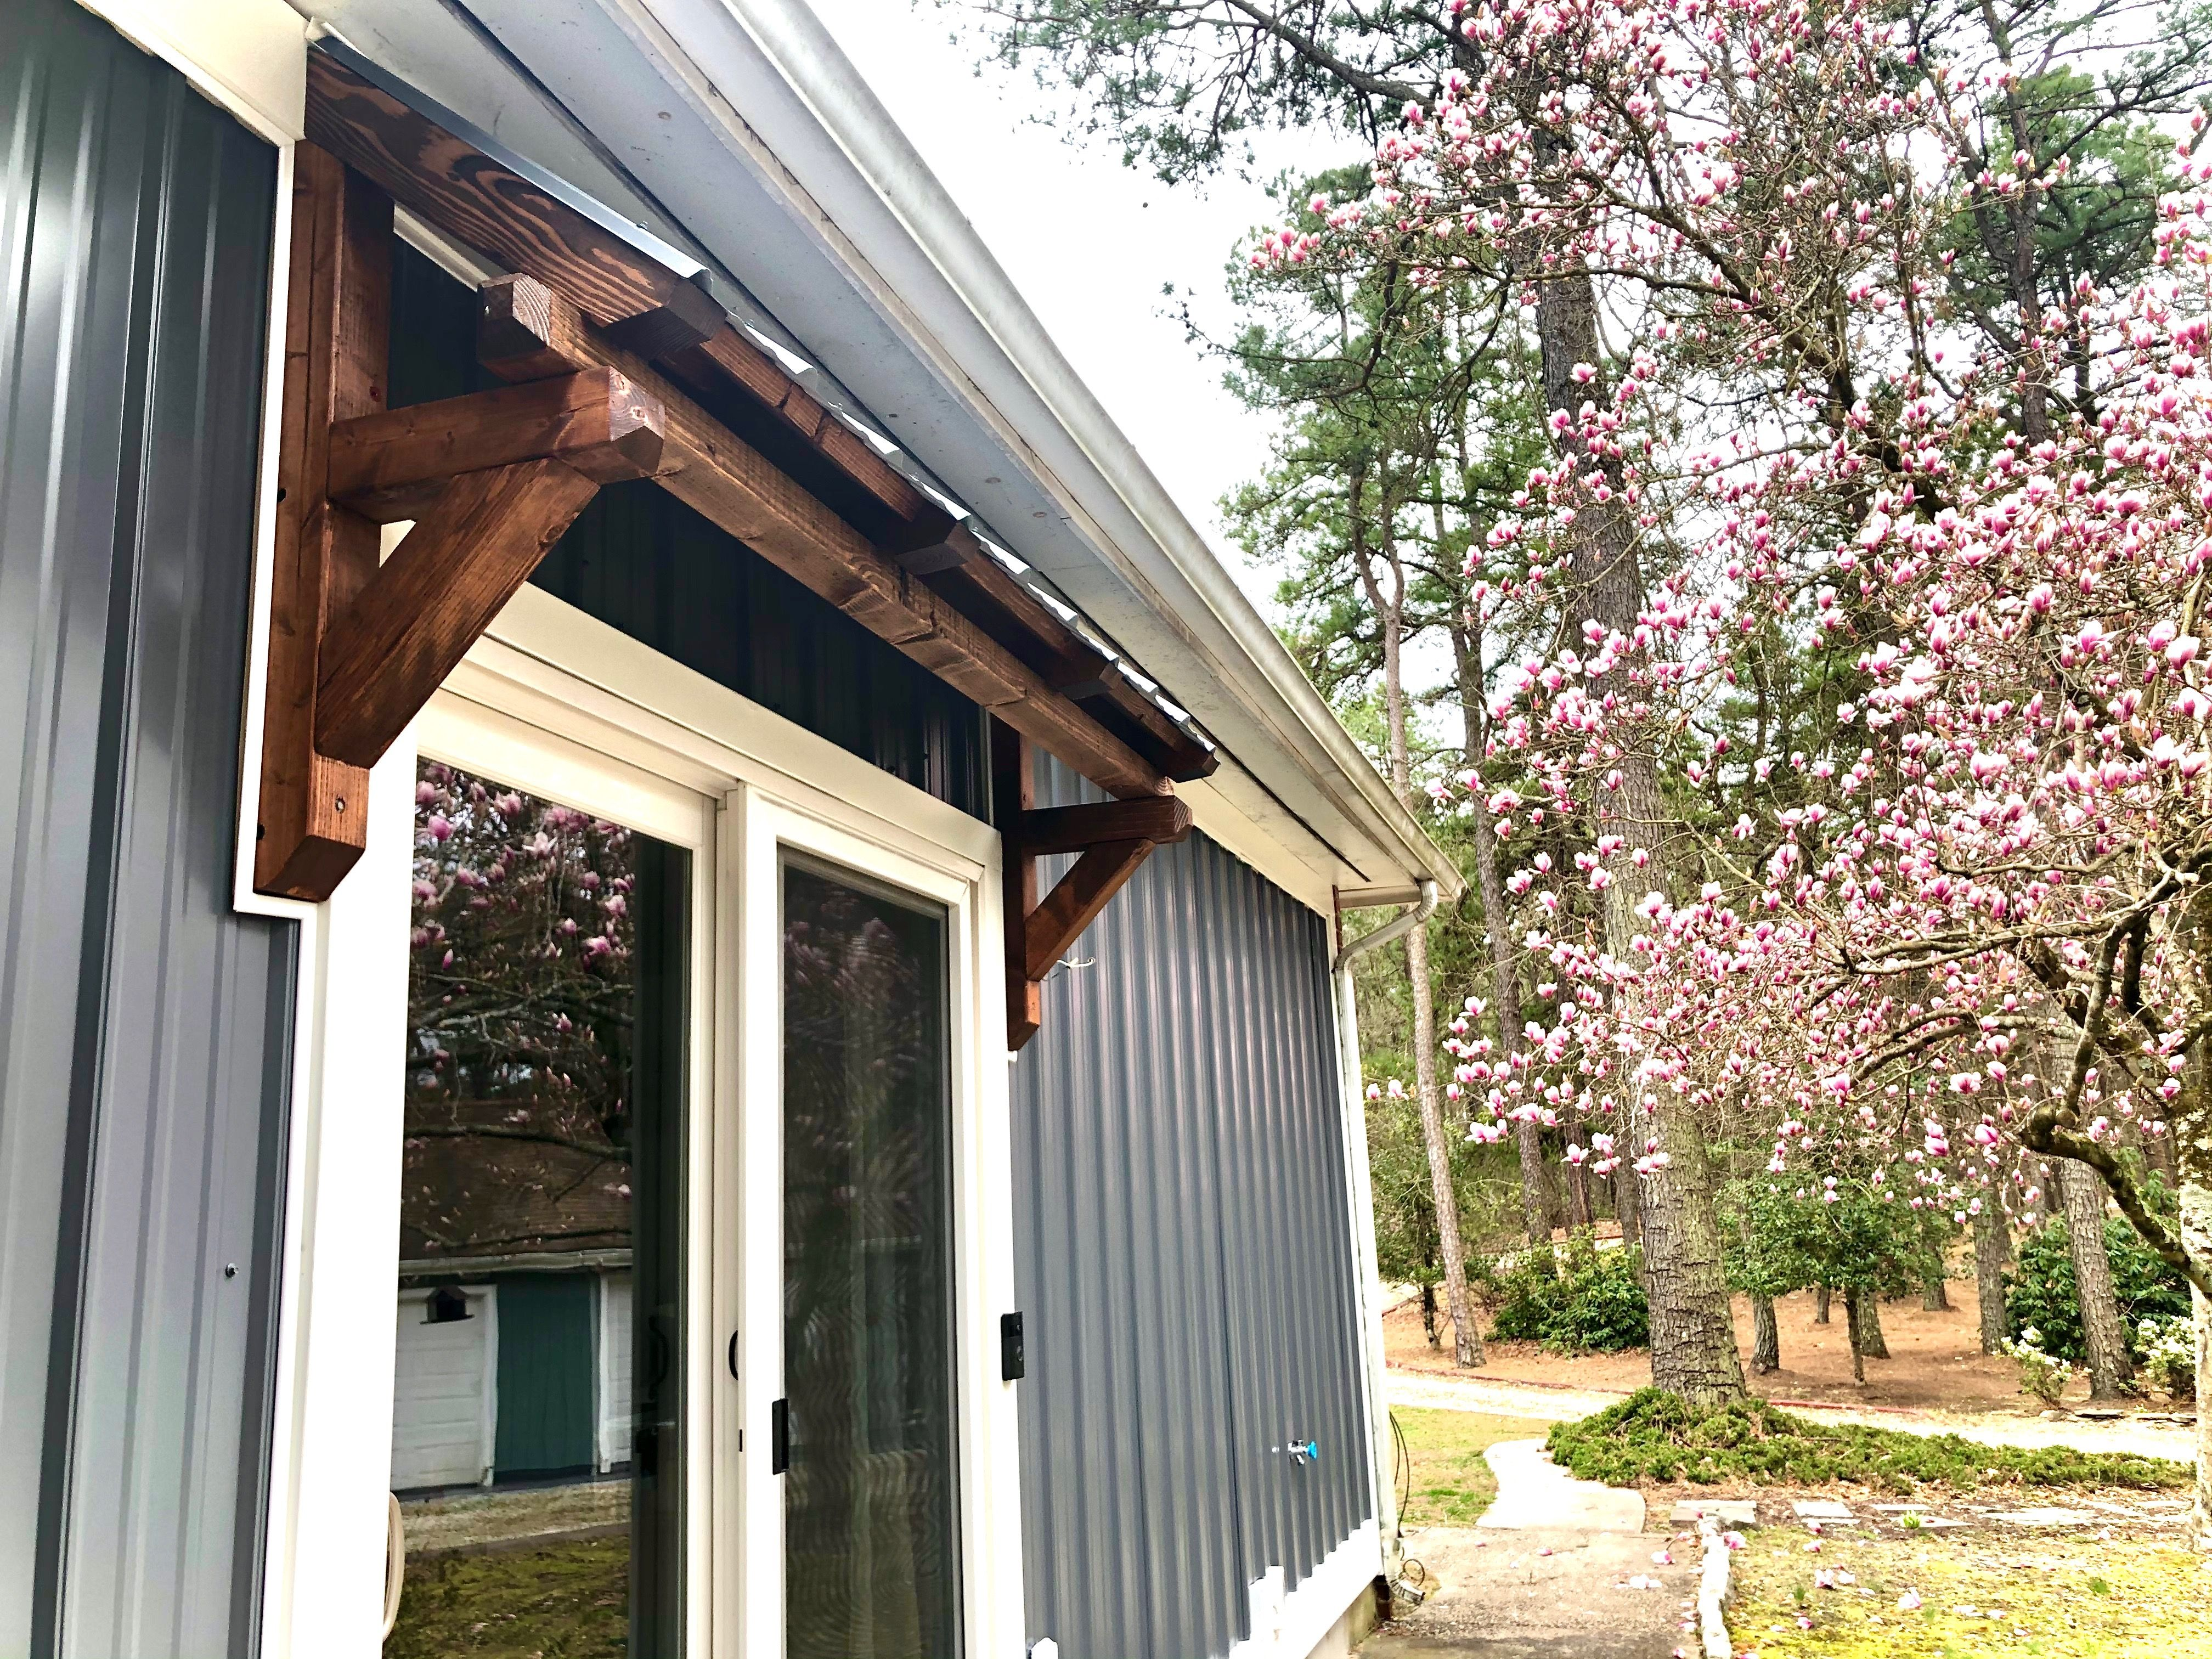 Awning Over Door In 2020 Metal Shed Roof Awning Over Door Patio Awning